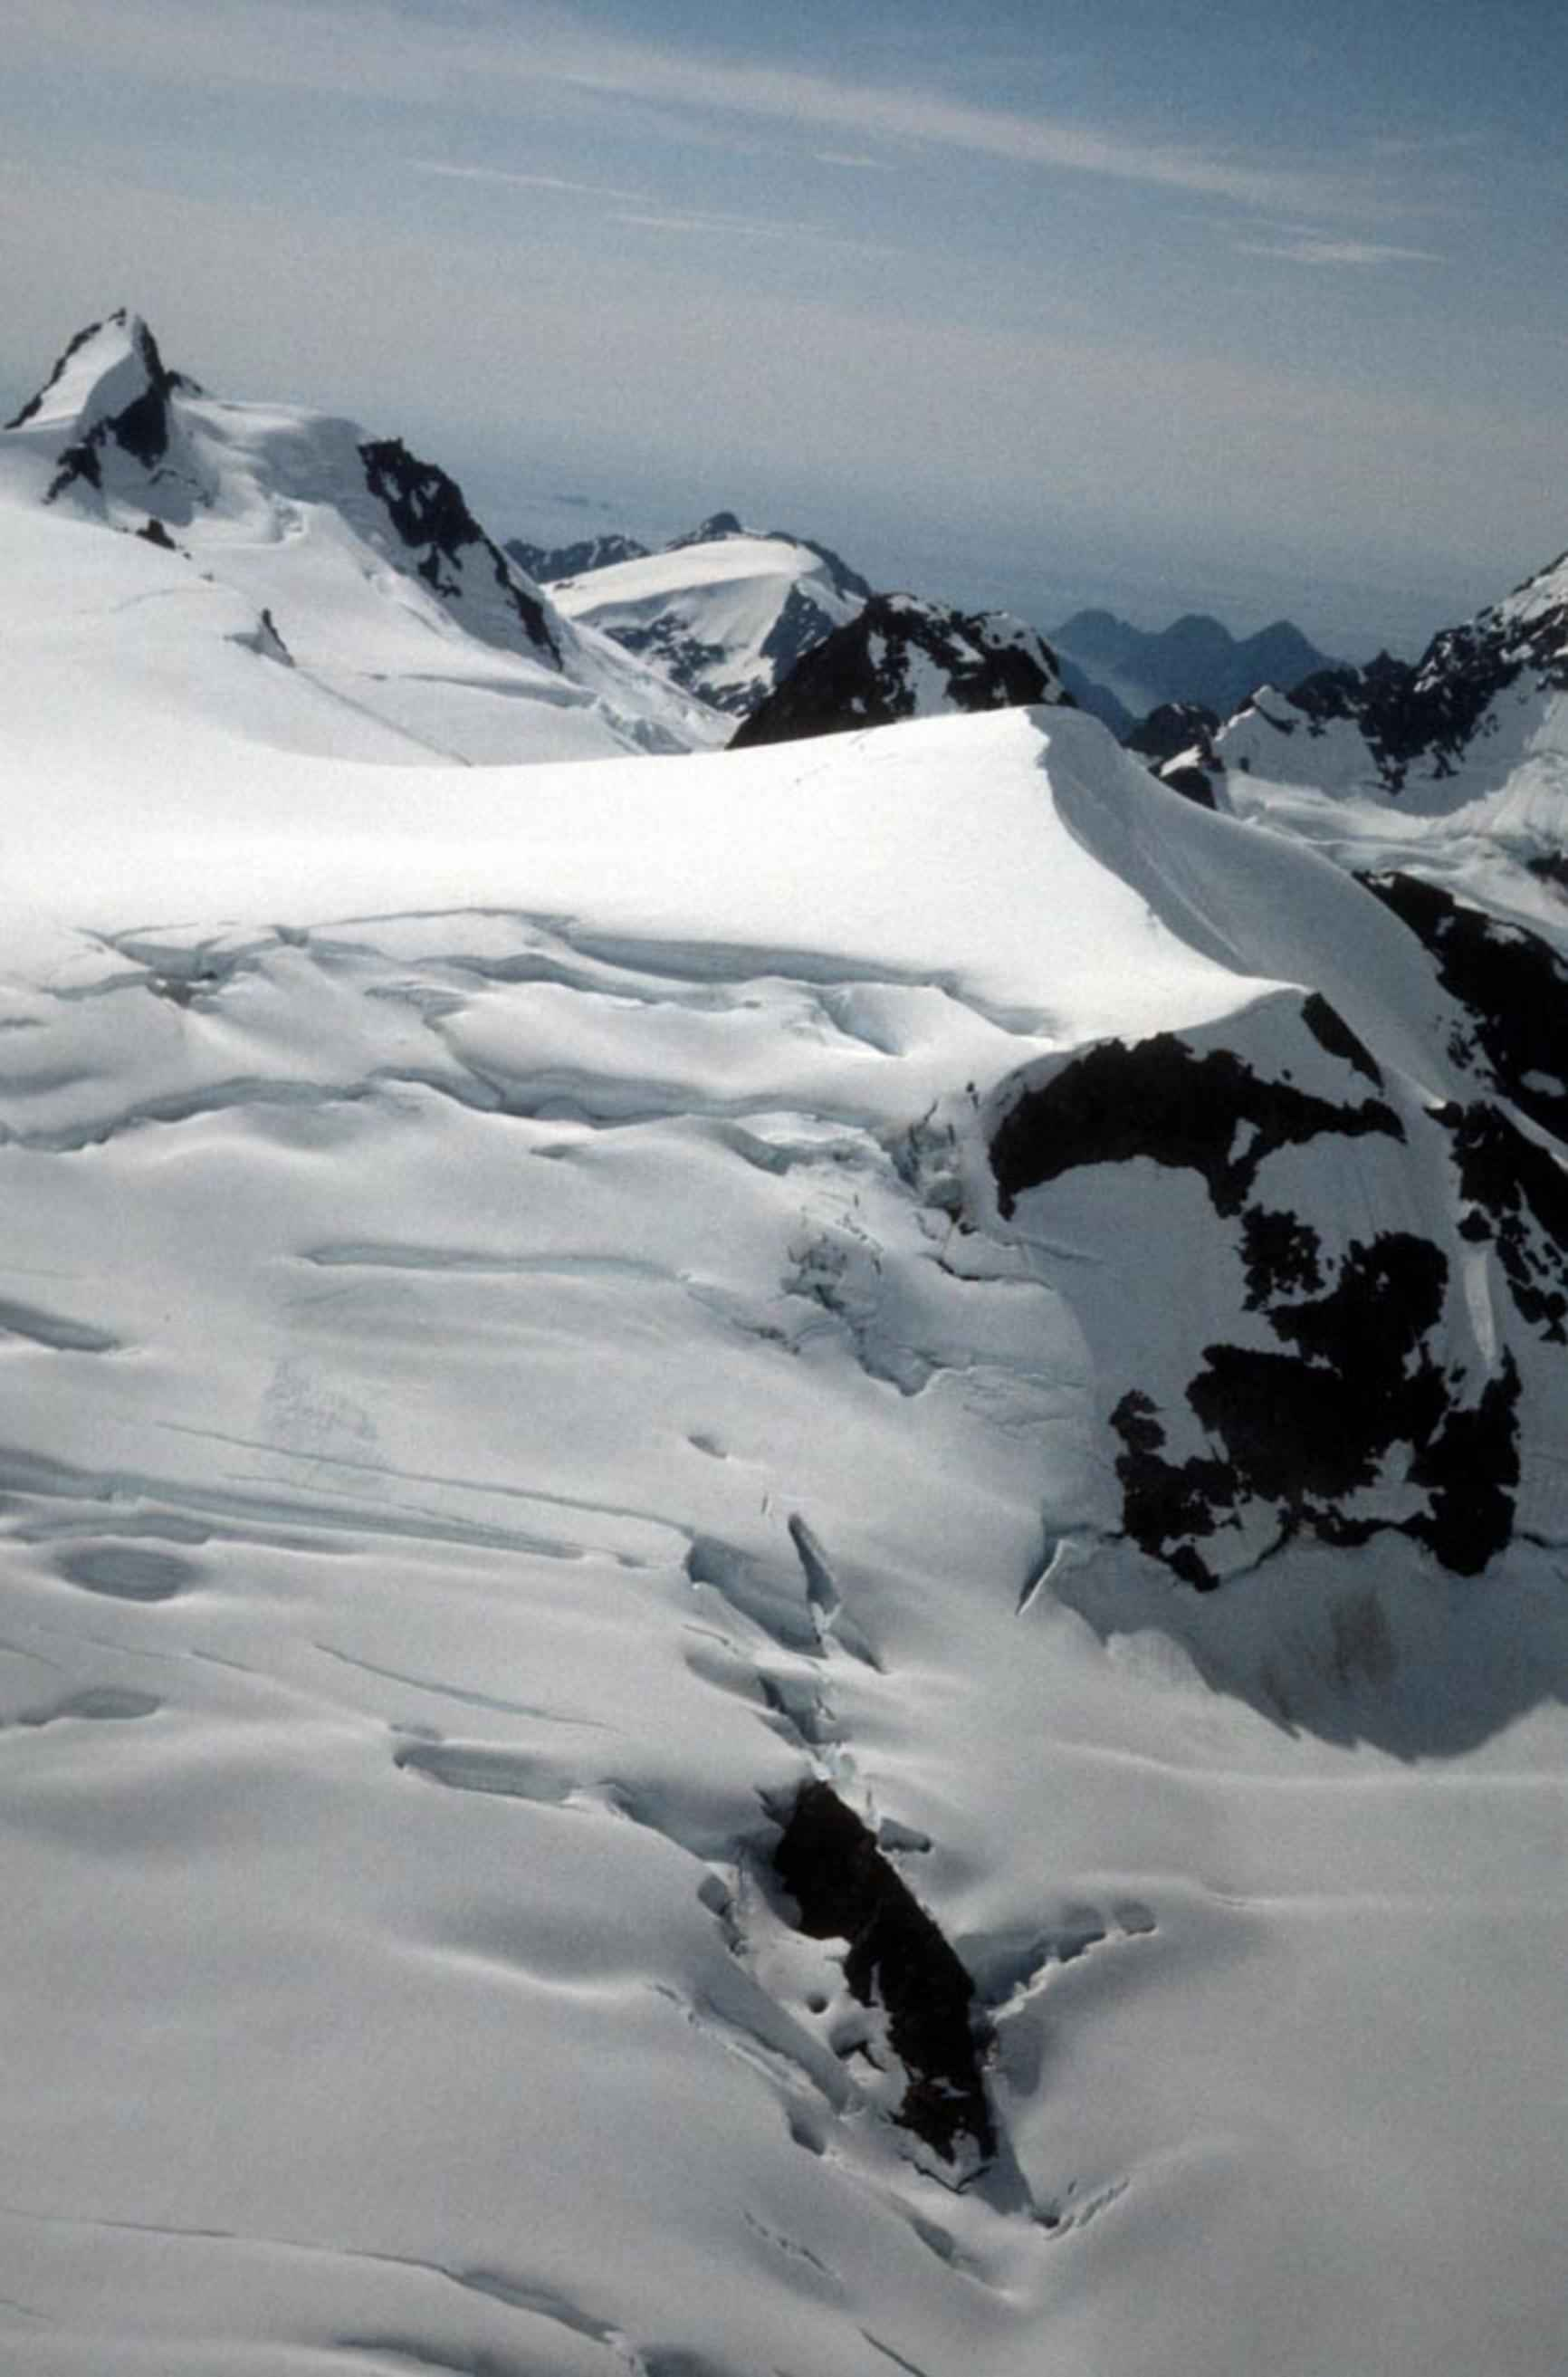 File:Aerial view of harding ice field.jpg - Wikimedia Commons